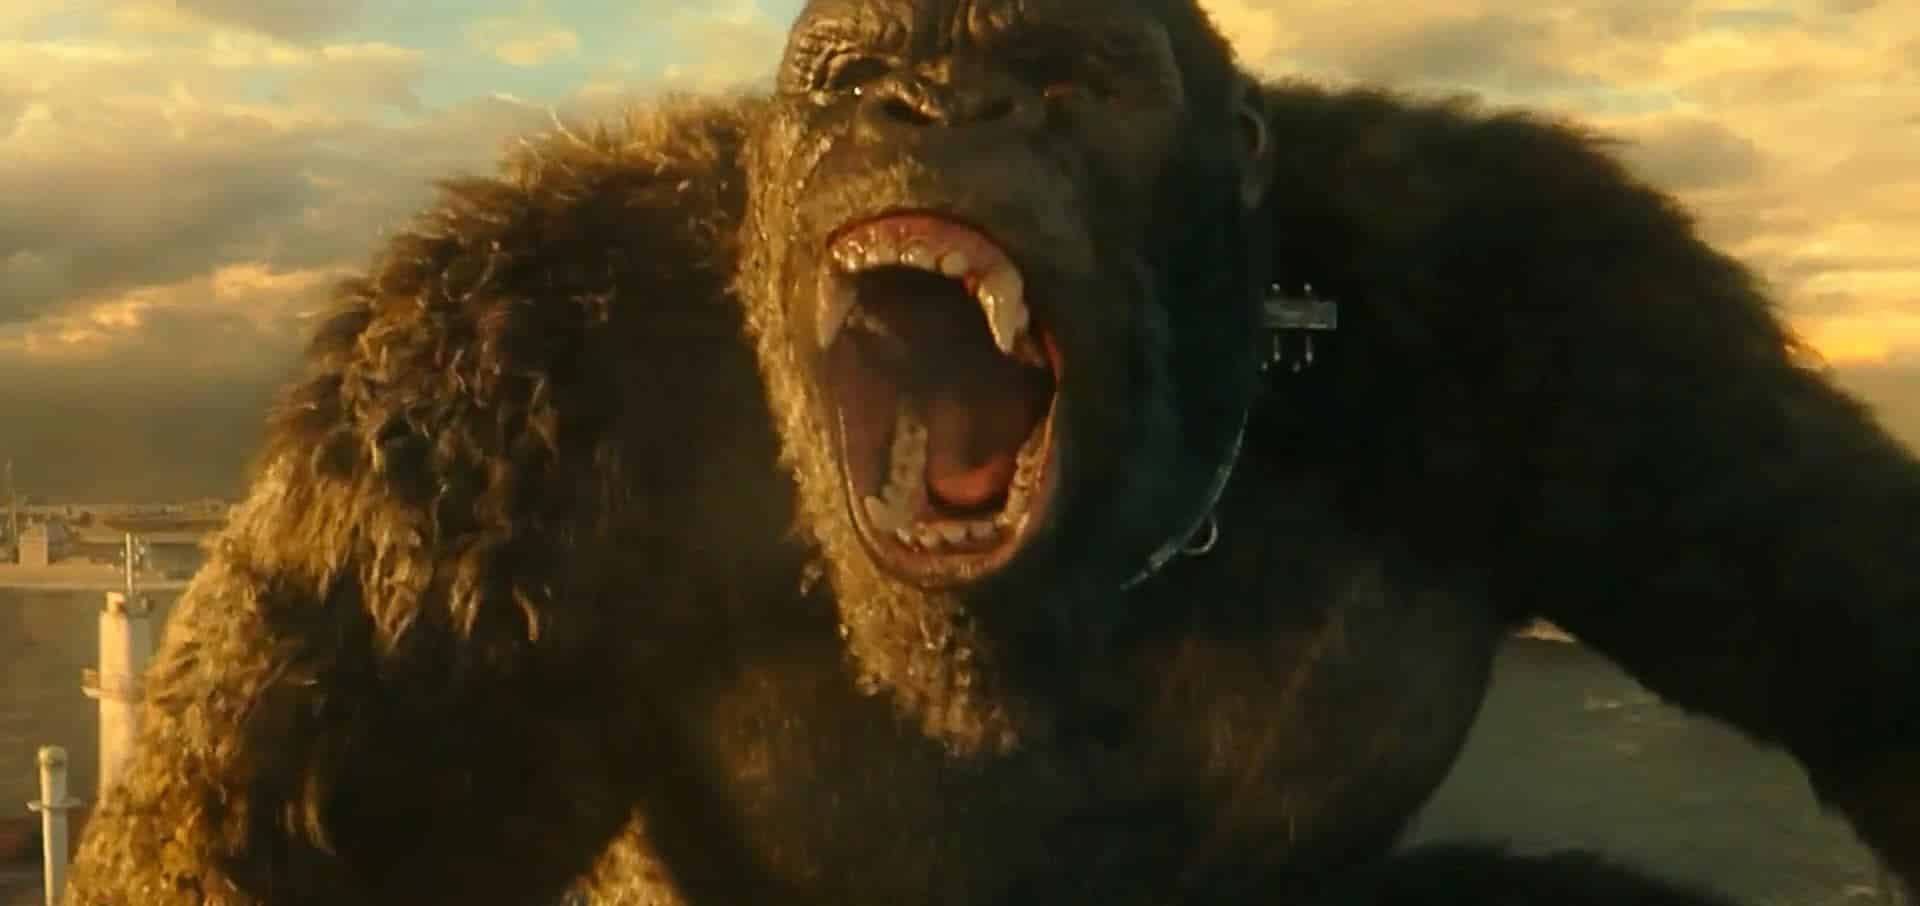 simultaneous release HBO Max blockbuster movies changed movie experience 2021 theaters streaming, Dune Matrix 4 The Suicide Squad Kong vs. Godzilla King Richard